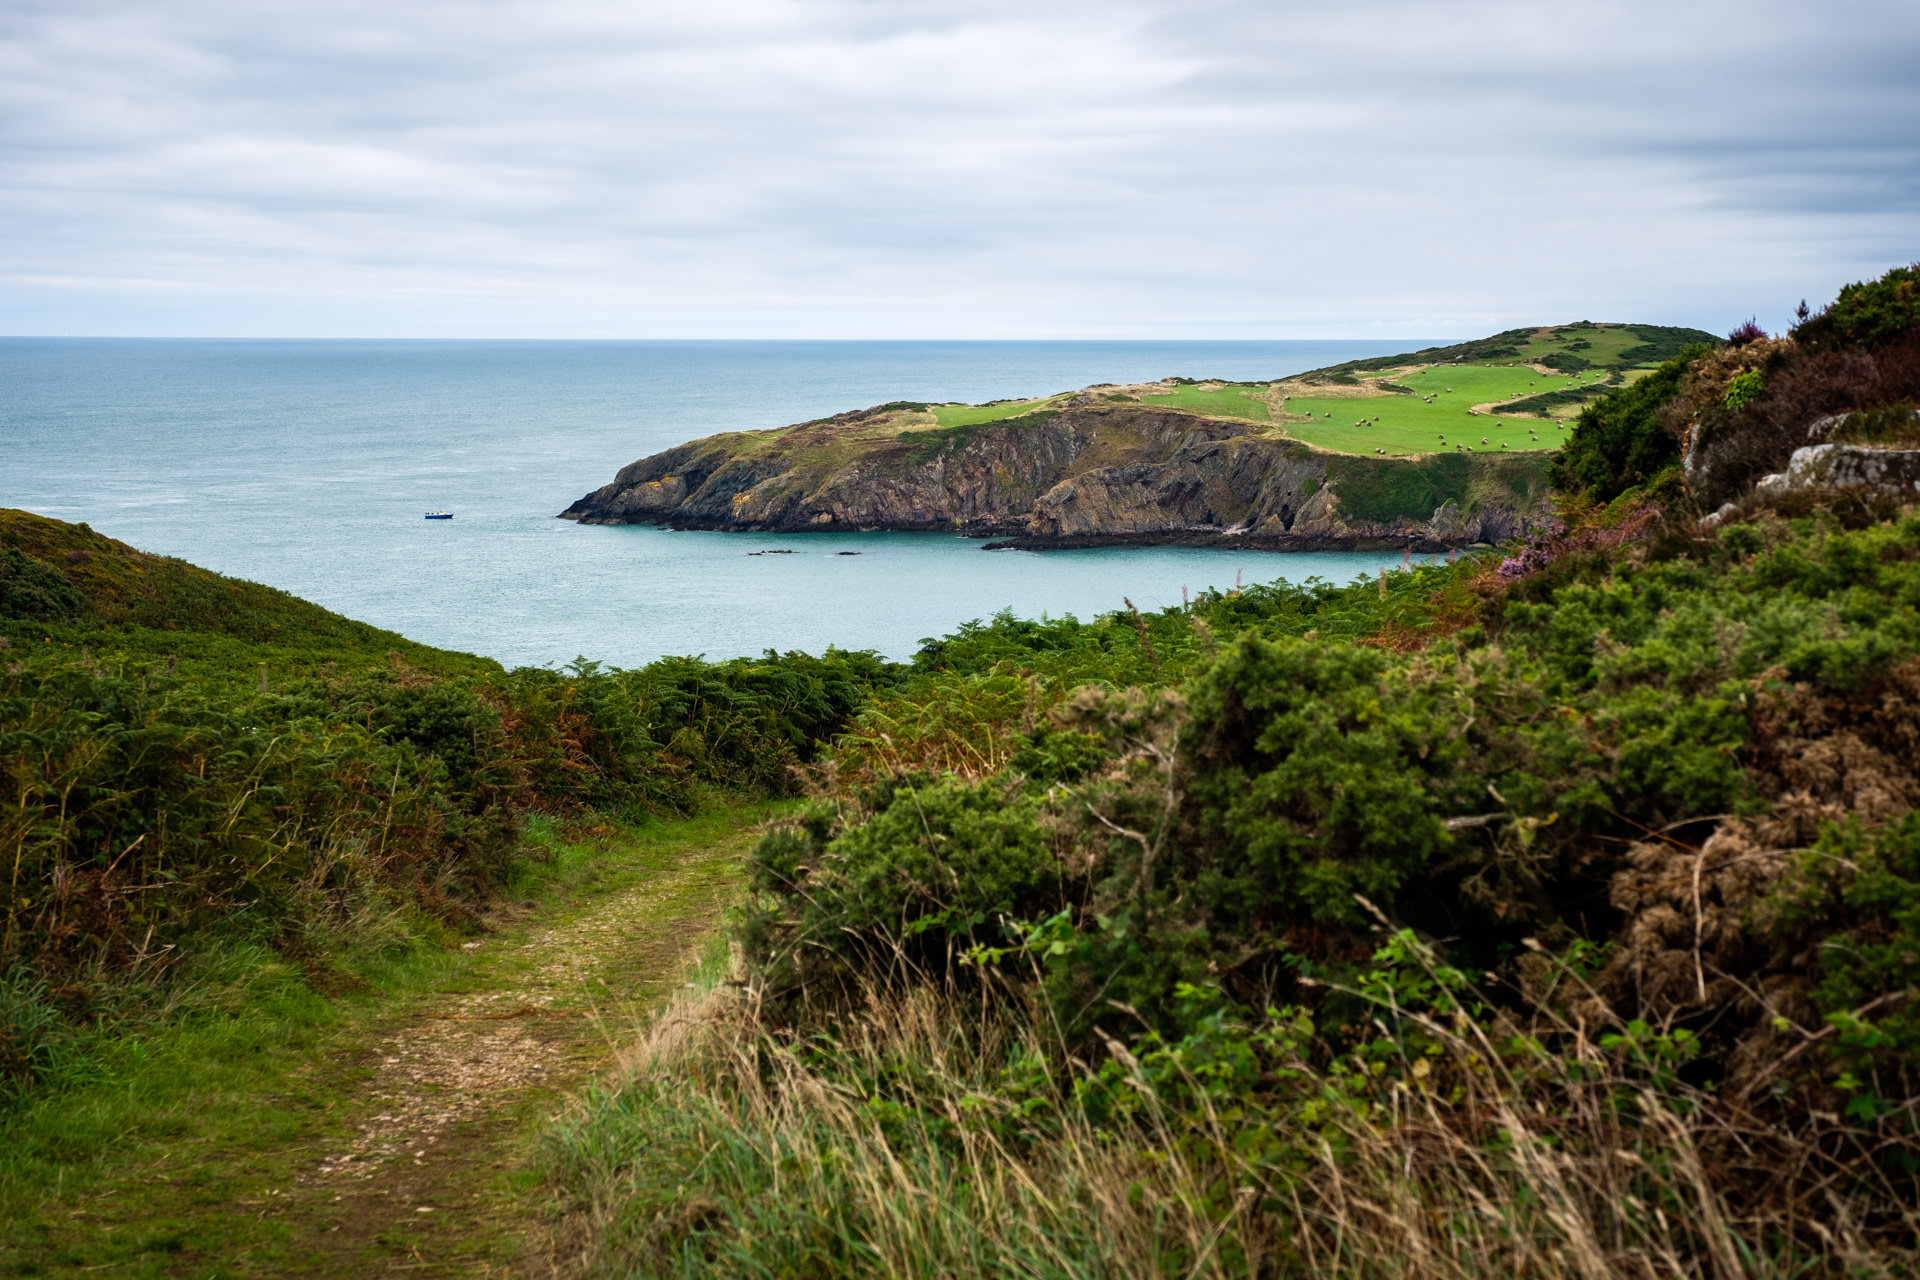 The view down to Porth Wen…